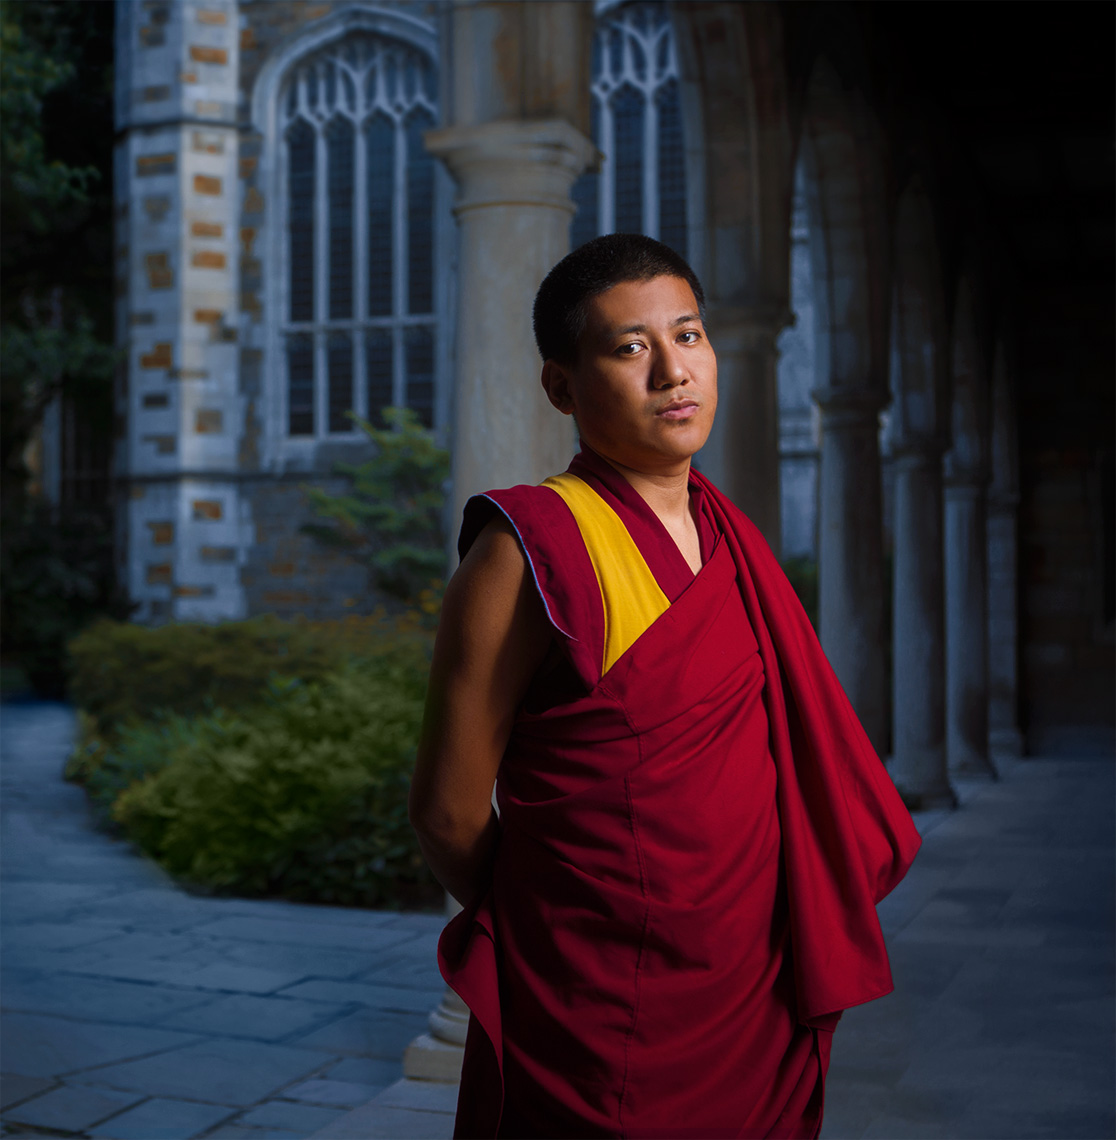 environmental-portrait-of-demo-rinpoche-in-ann-arbor-photographer-scott-stewart